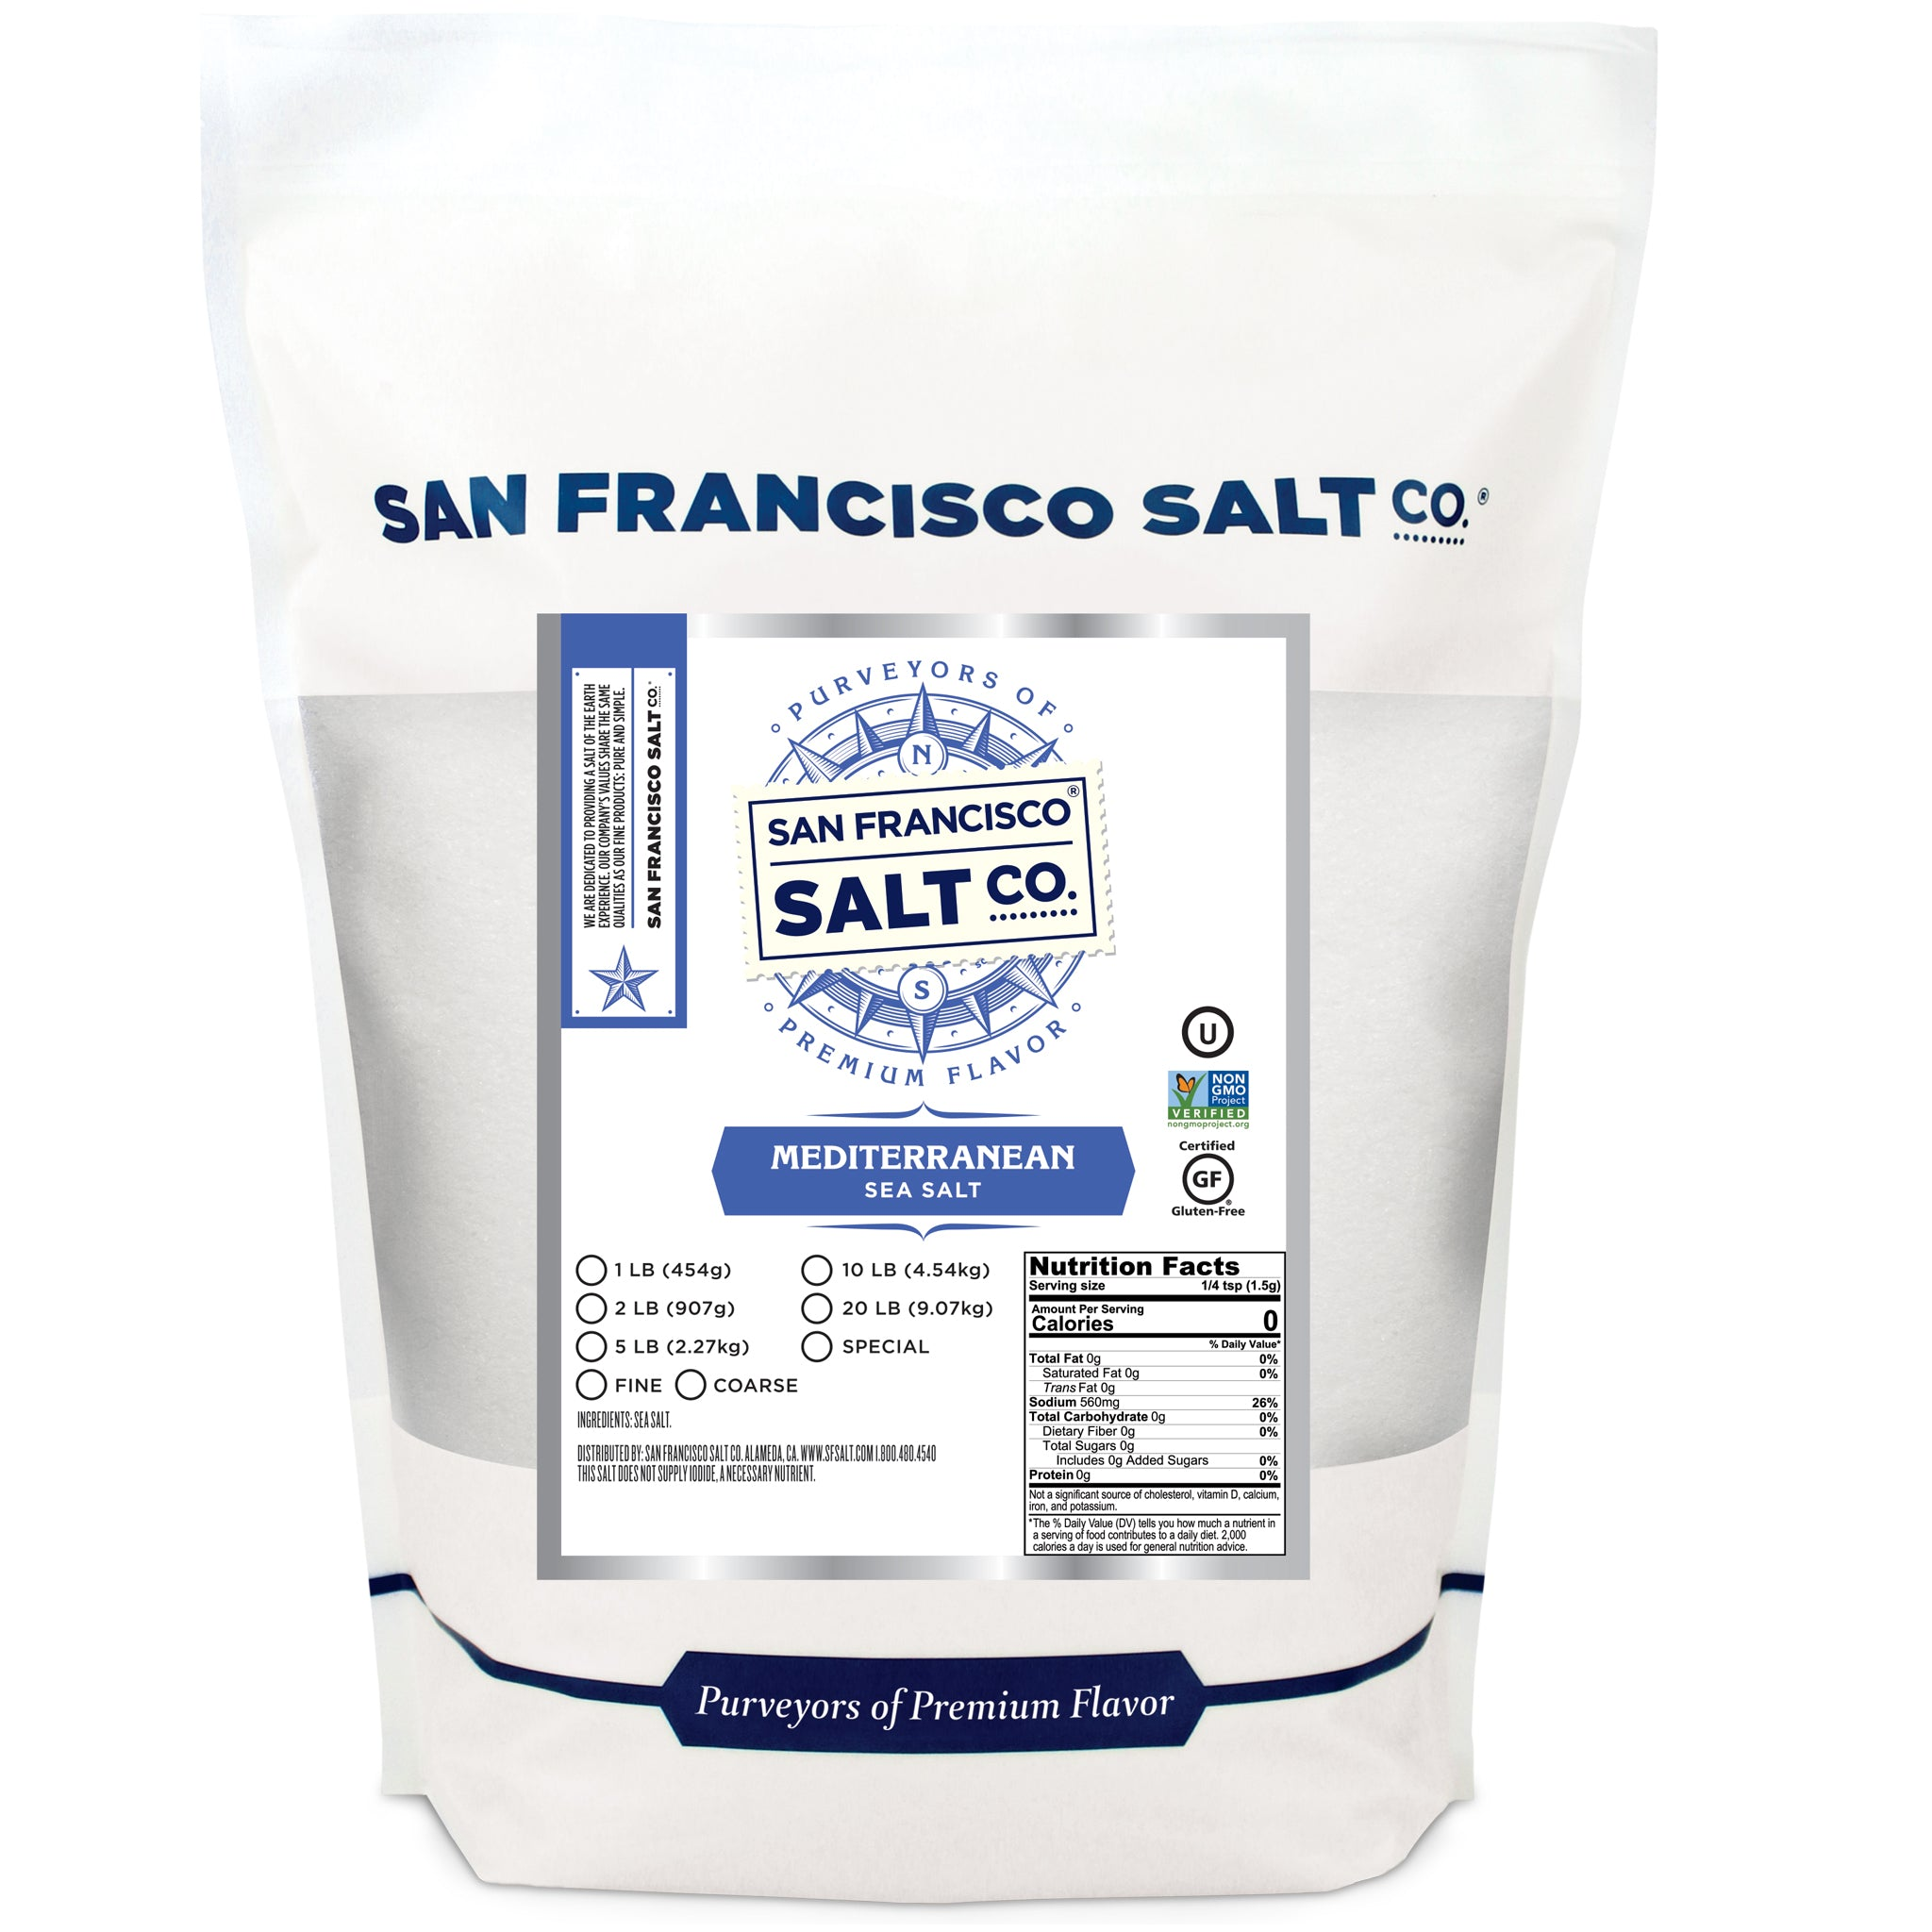 Mediterranean Sea Salt - San Francisco Salt Company